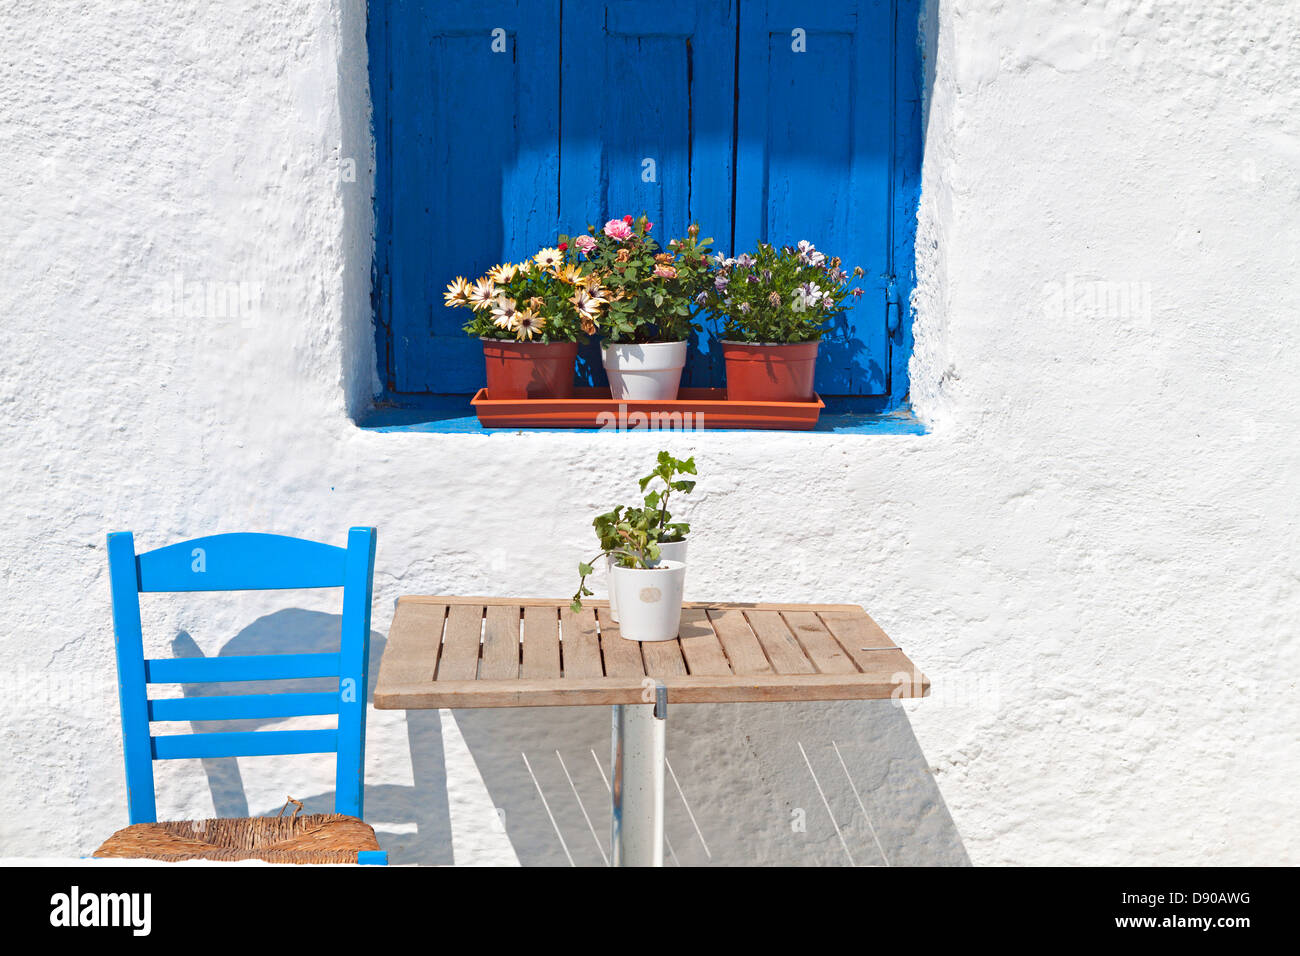 Traditional Greek house from the Cyclades islands. - Stock Image